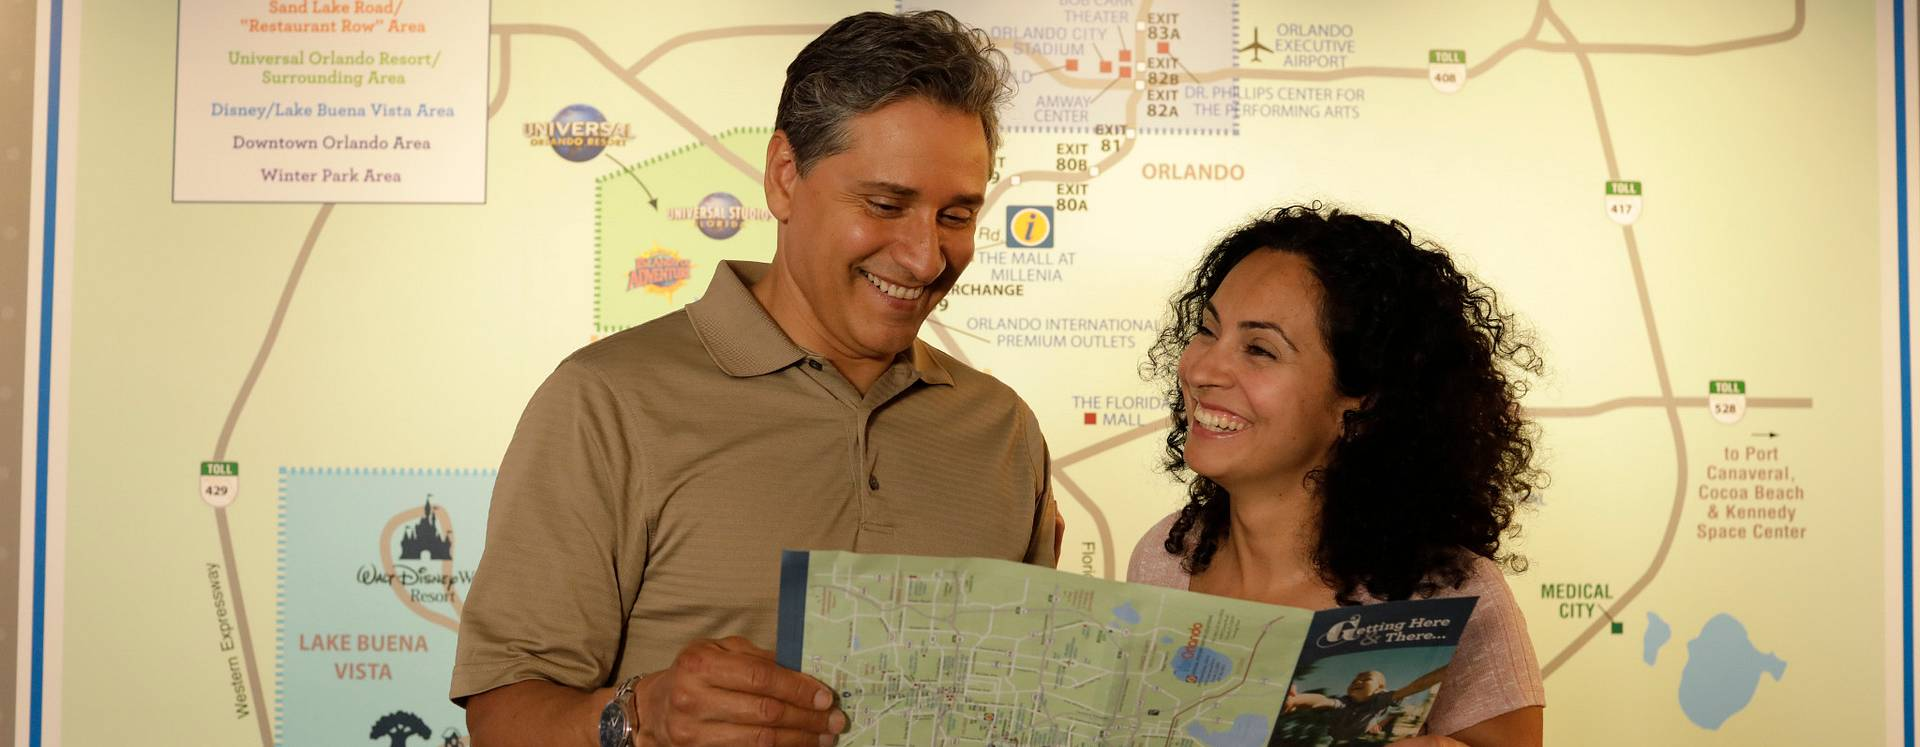 A smiling couple holding an Orlando brochure with a map